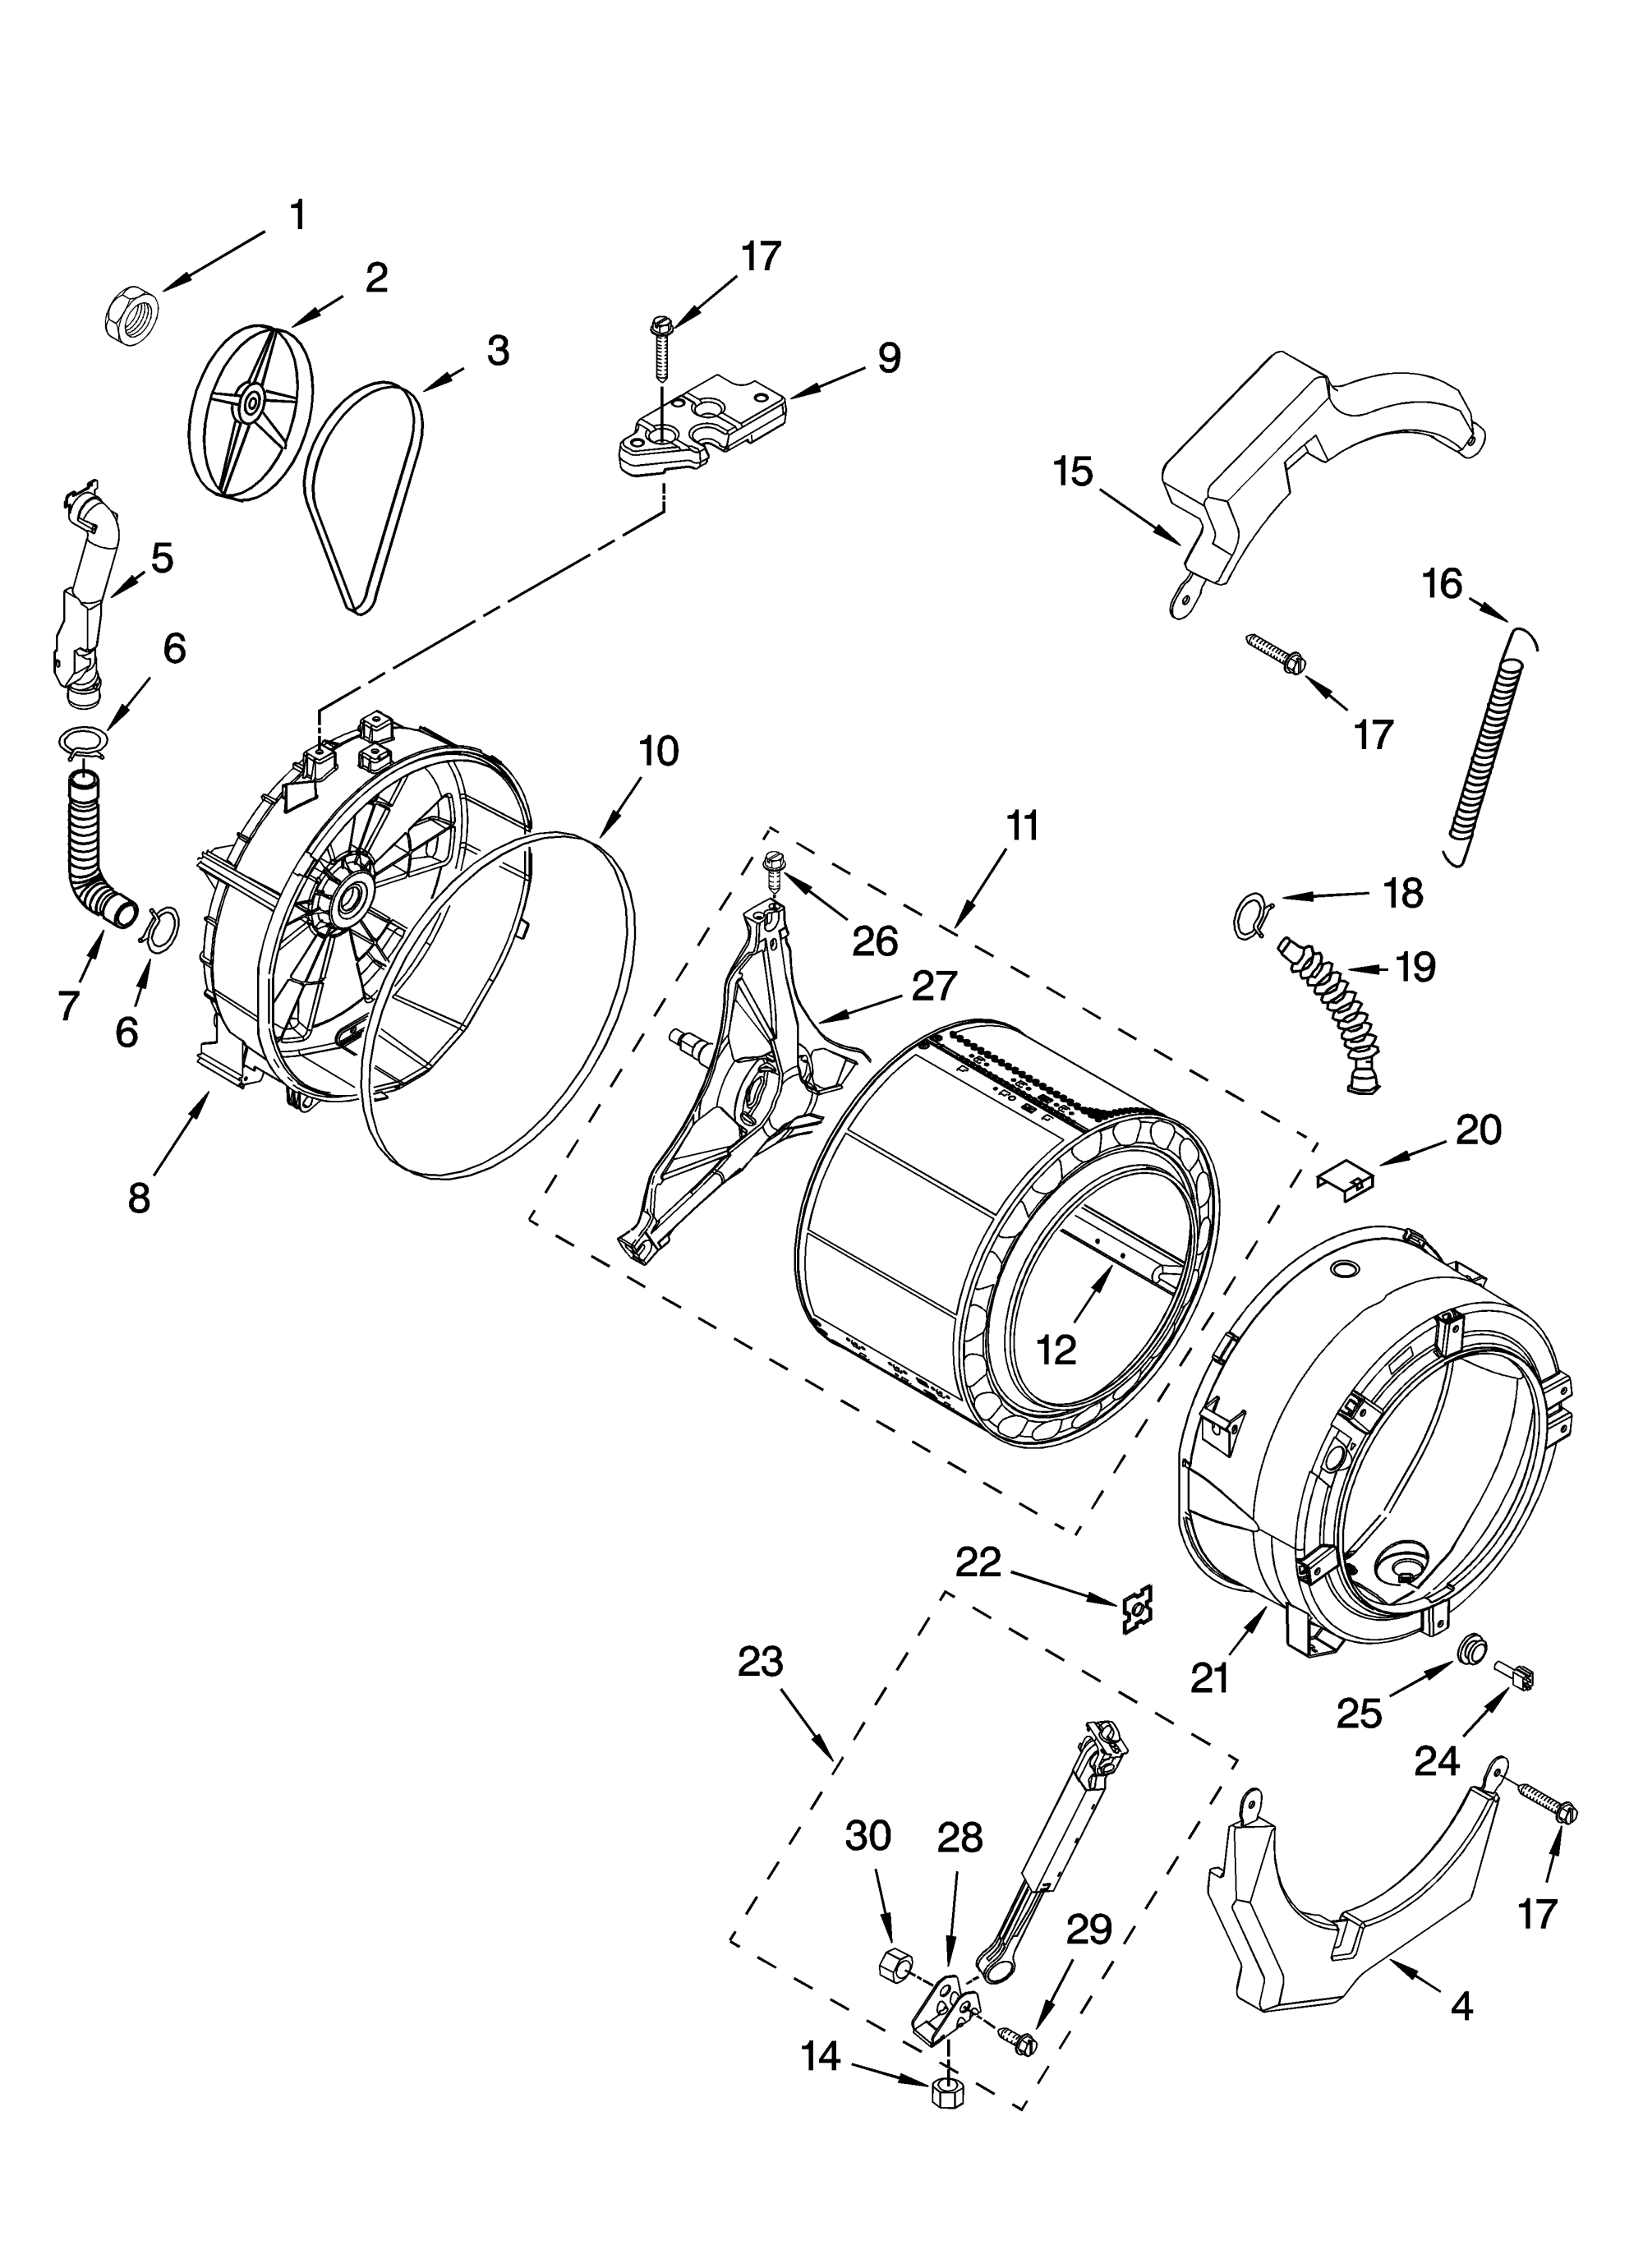 hight resolution of kenmore 11046462500 tub and basket parts optional parts not included diagram